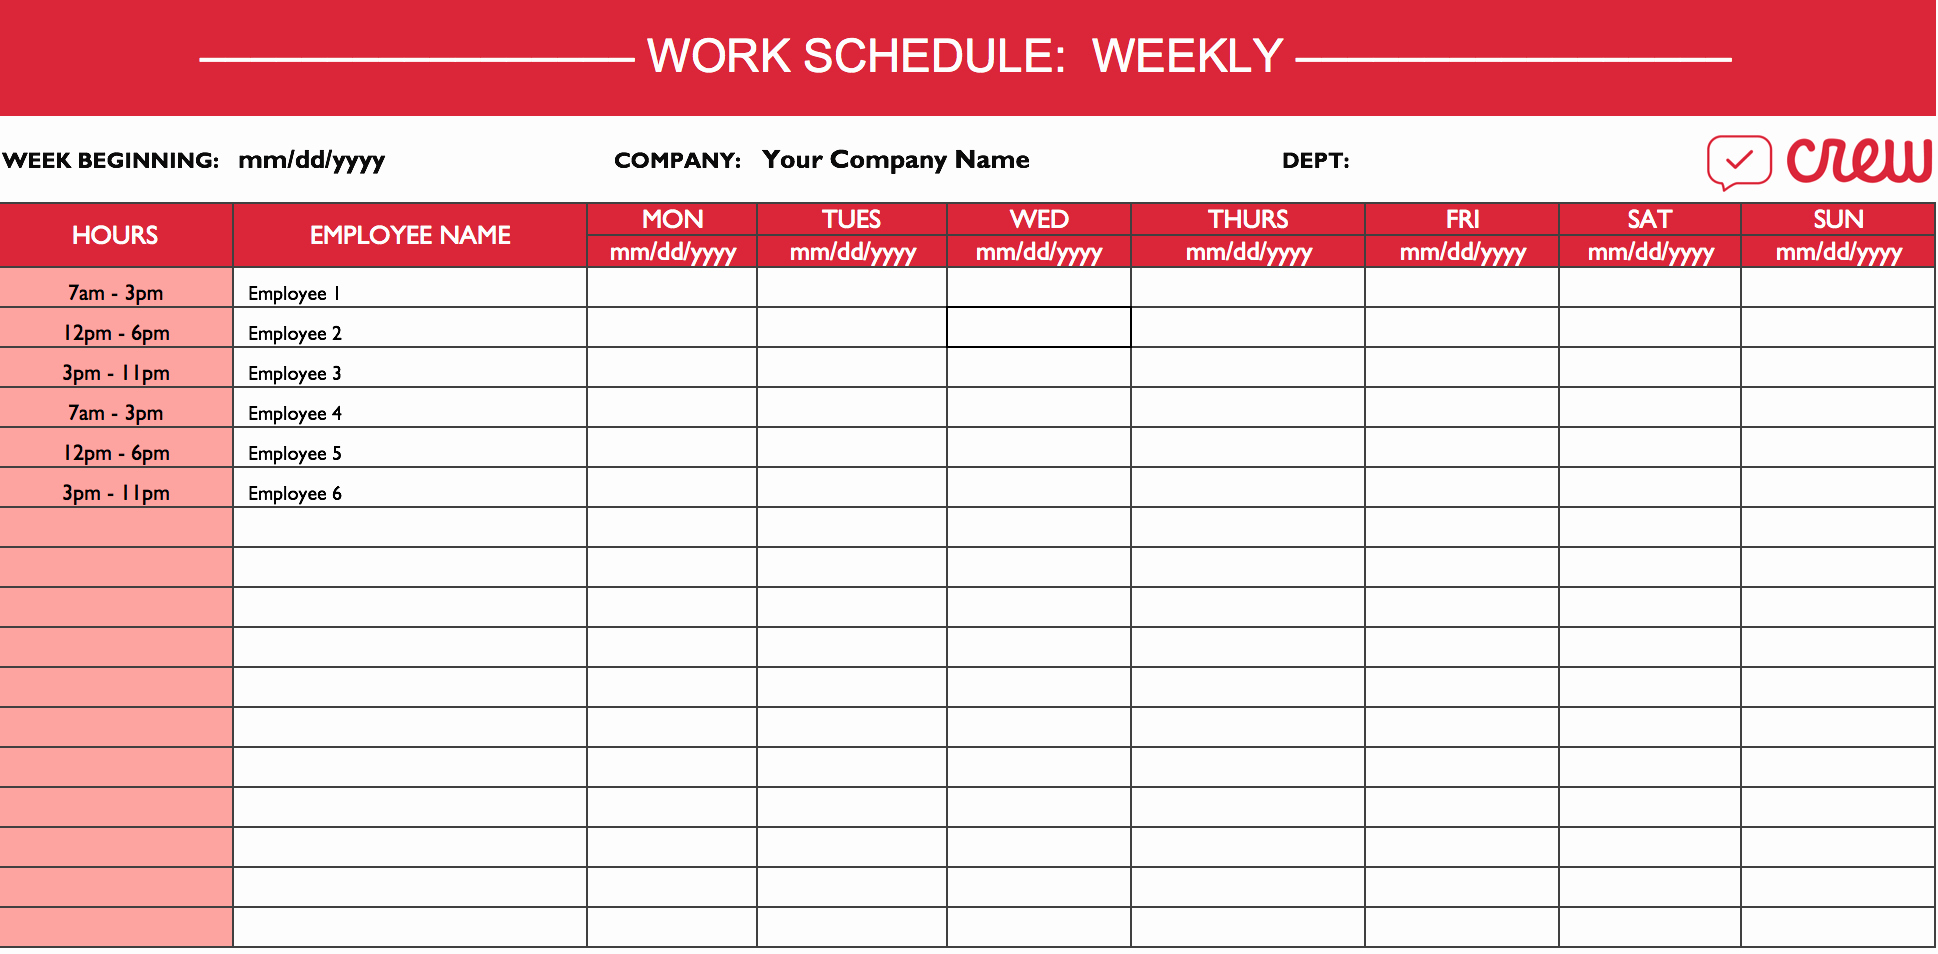 Weekly Work Schedule Template Free Lovely Weekly Work Schedule Template I Crew